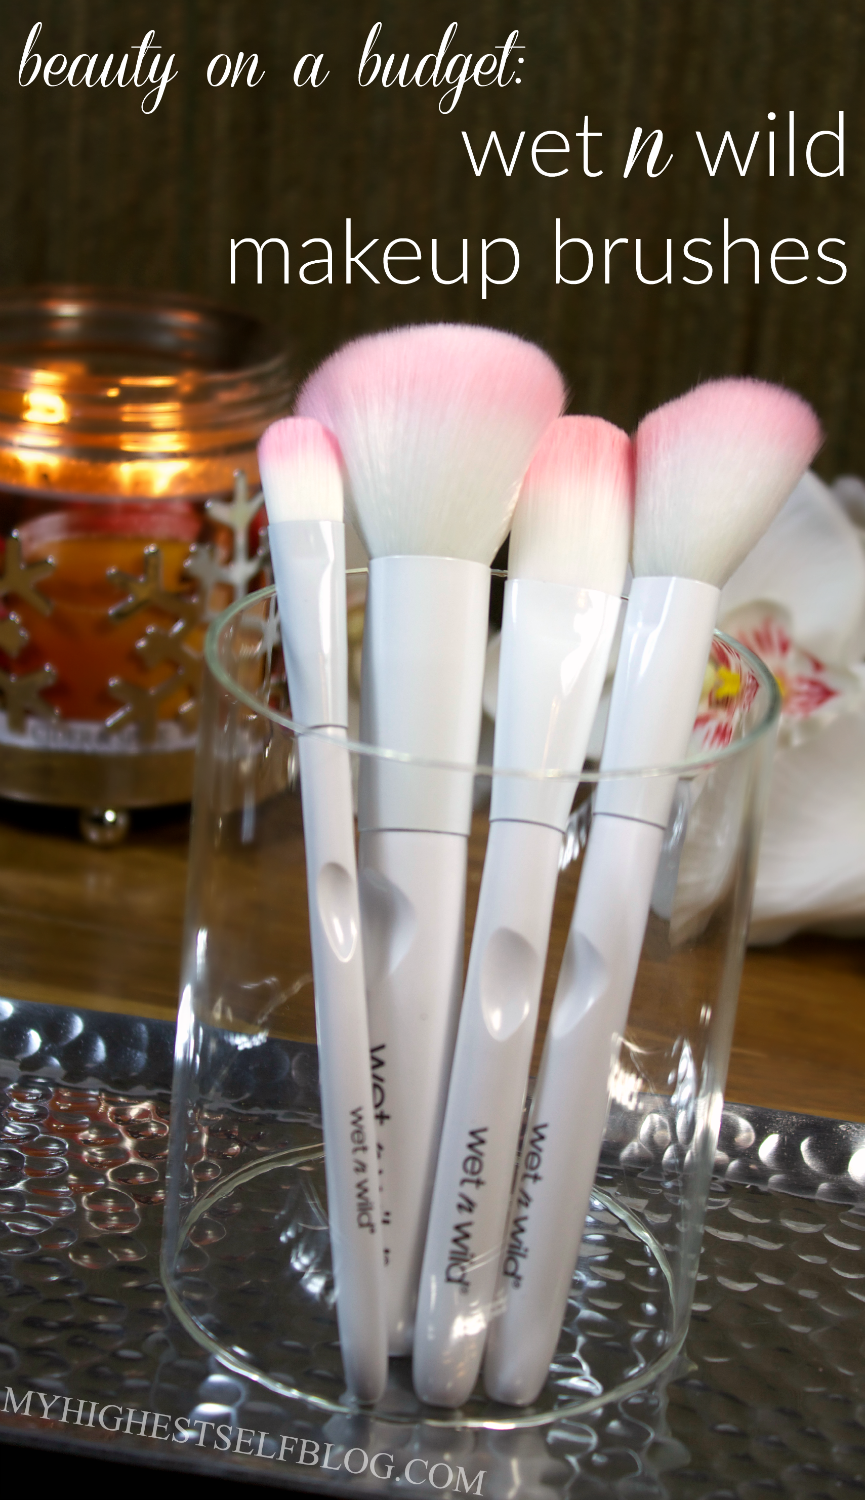 New Wet n Wild Makeup Brushes